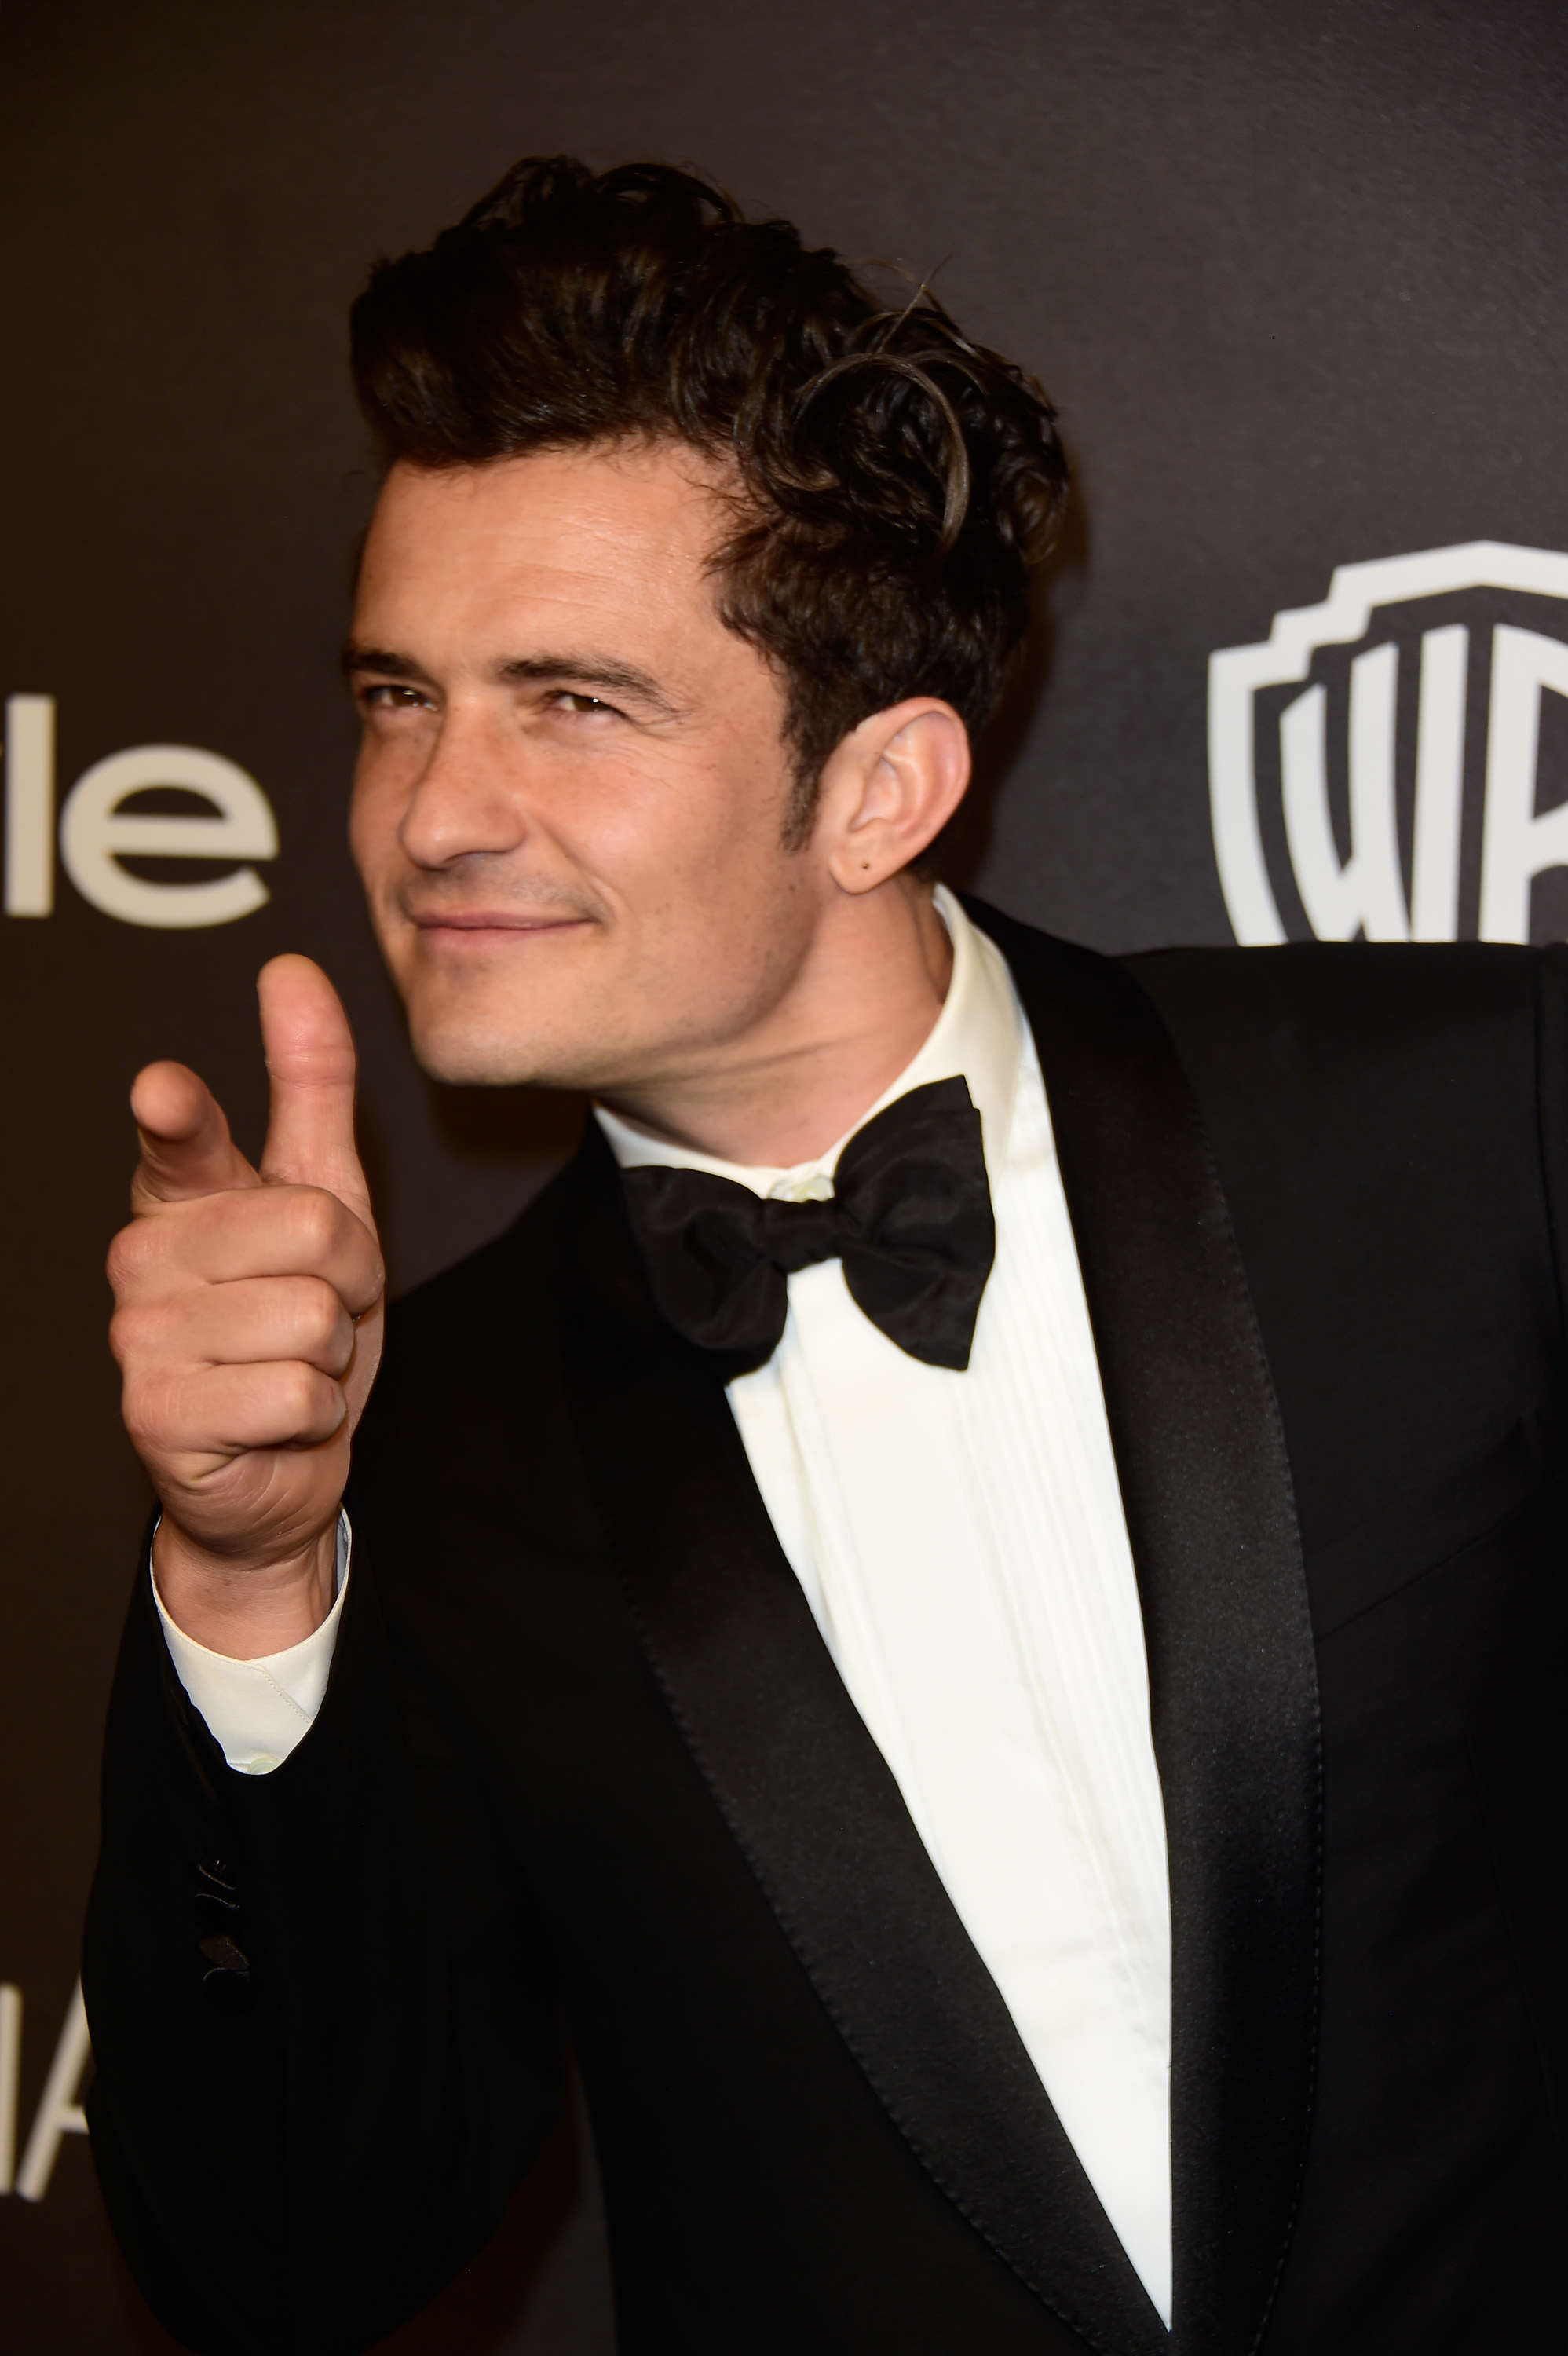 Orlando Bloom Just Got Naked On A Date With Katy Perry GettyImages 504436118